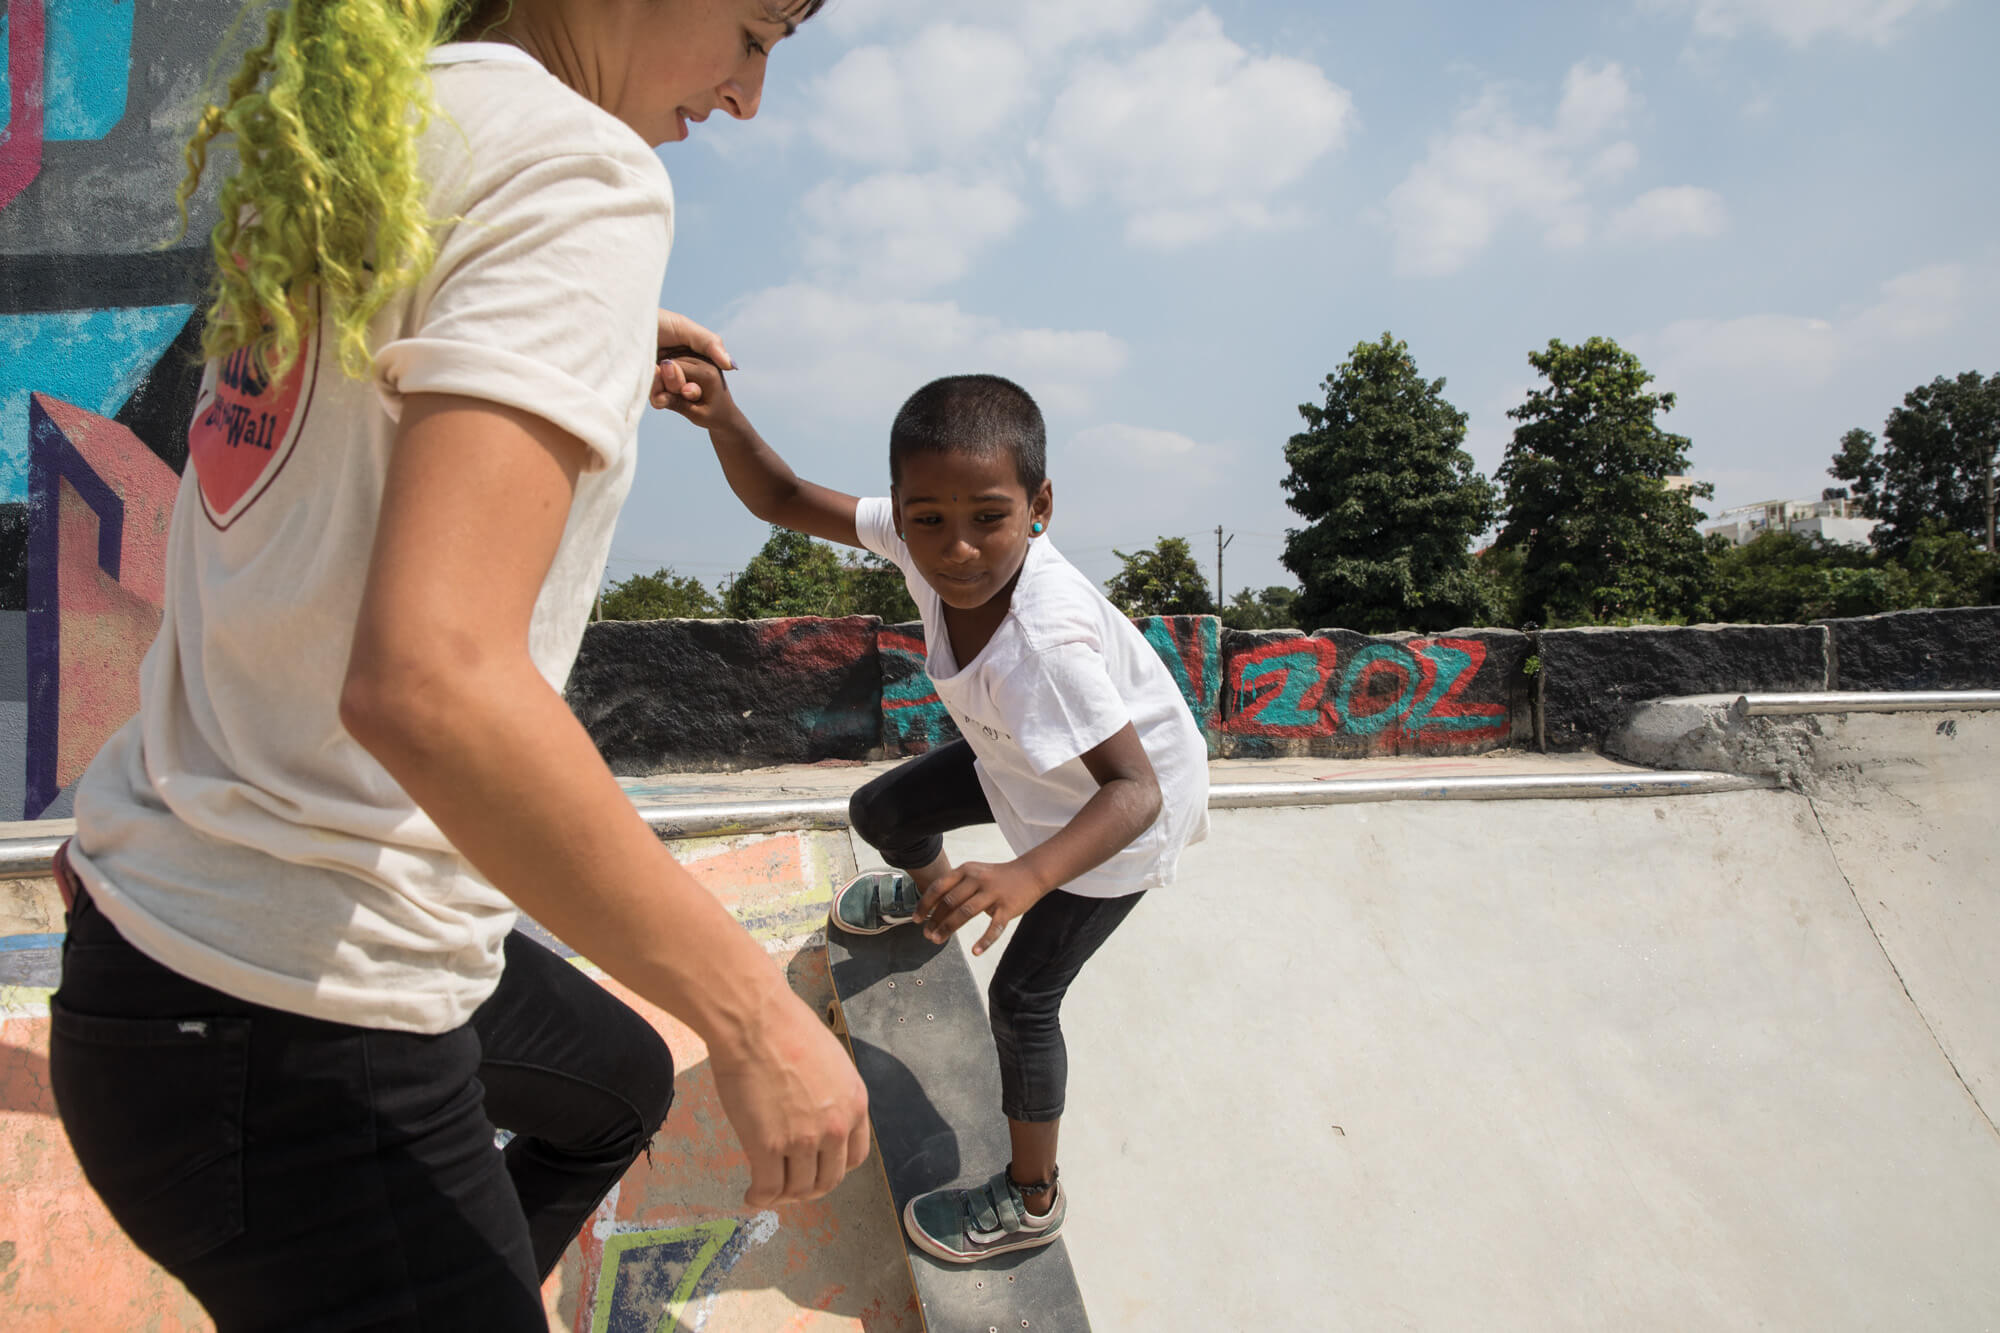 Lizzie Armanto in India with a skater girl